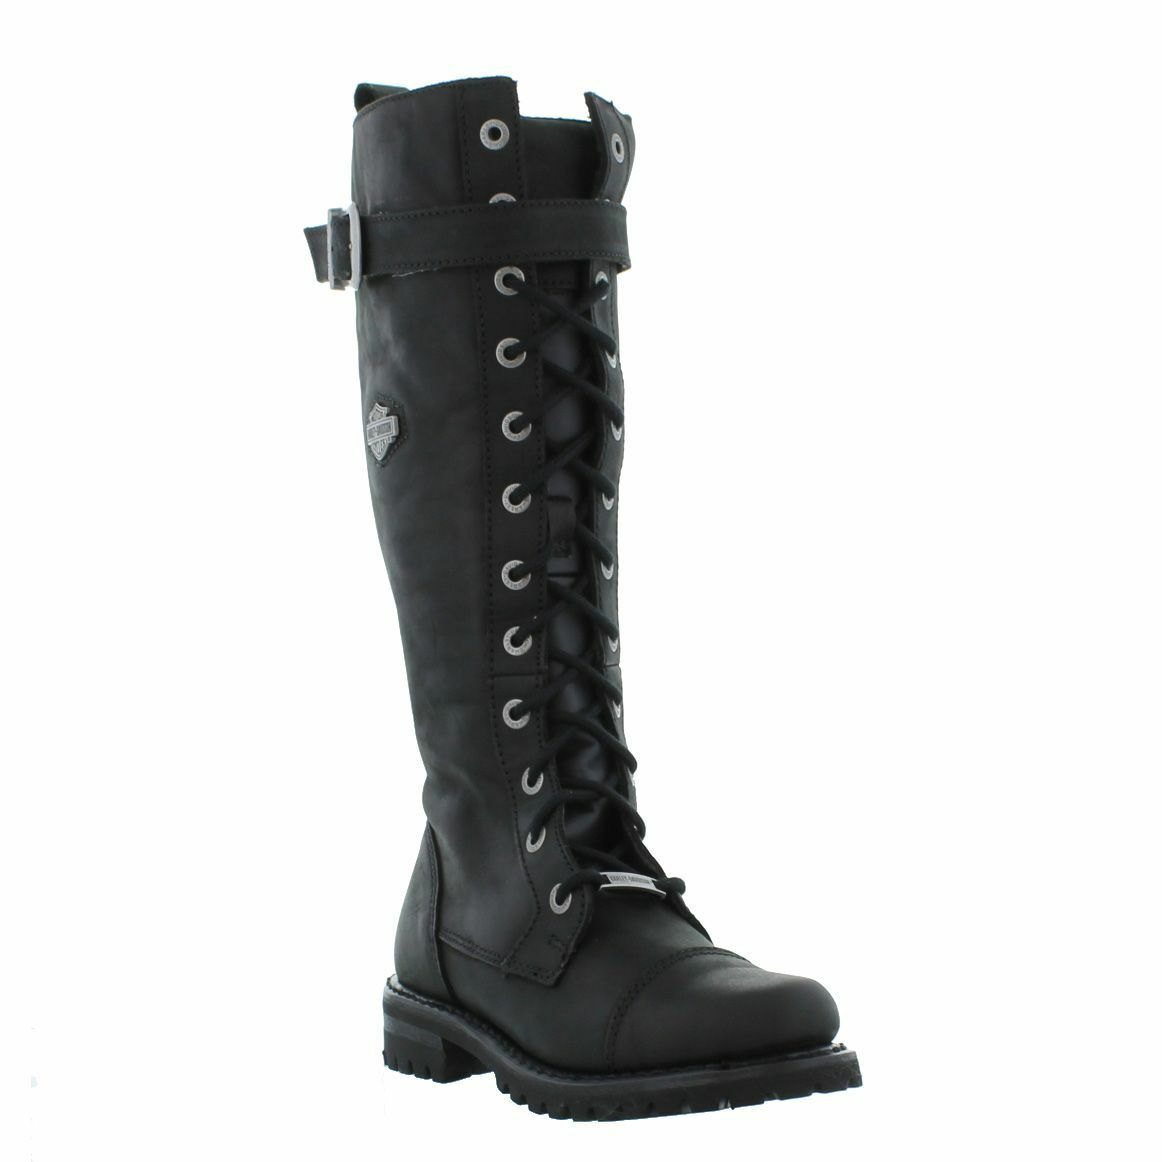 Harley Davidson Savannah Biker Boots Black Leather Lace Up Motorbike Ladies Boot